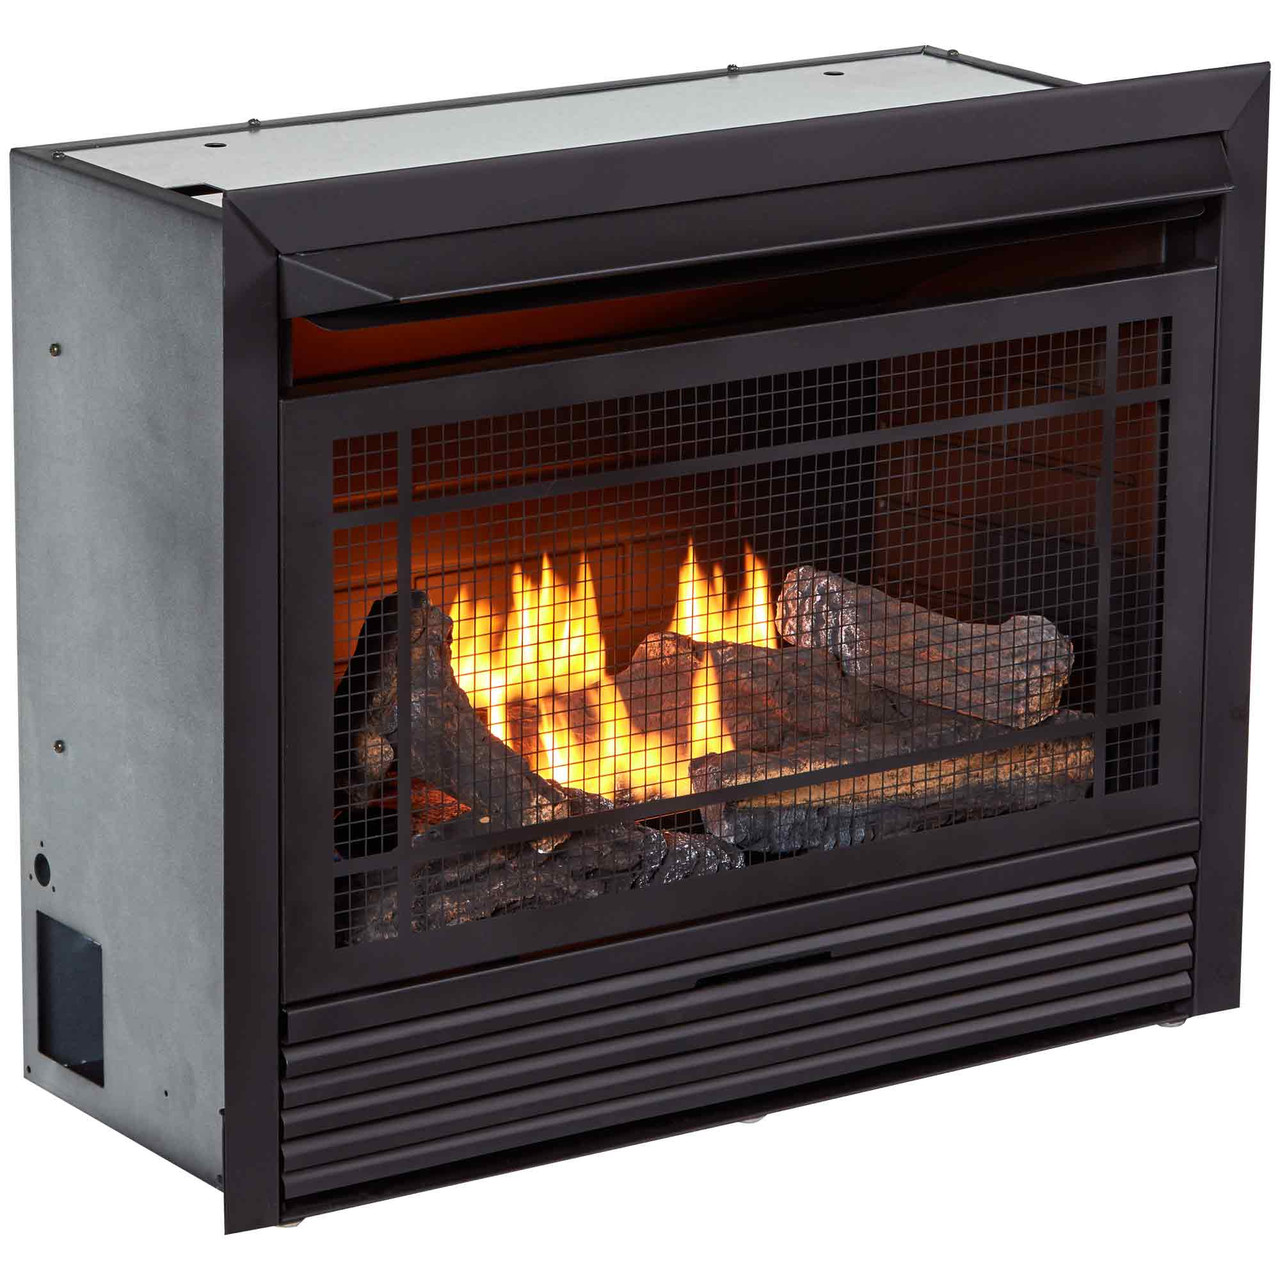 Propane Fireplace Inserts Ventless Gas Fireplaces Fireplace Inserts Factory Buys Direct